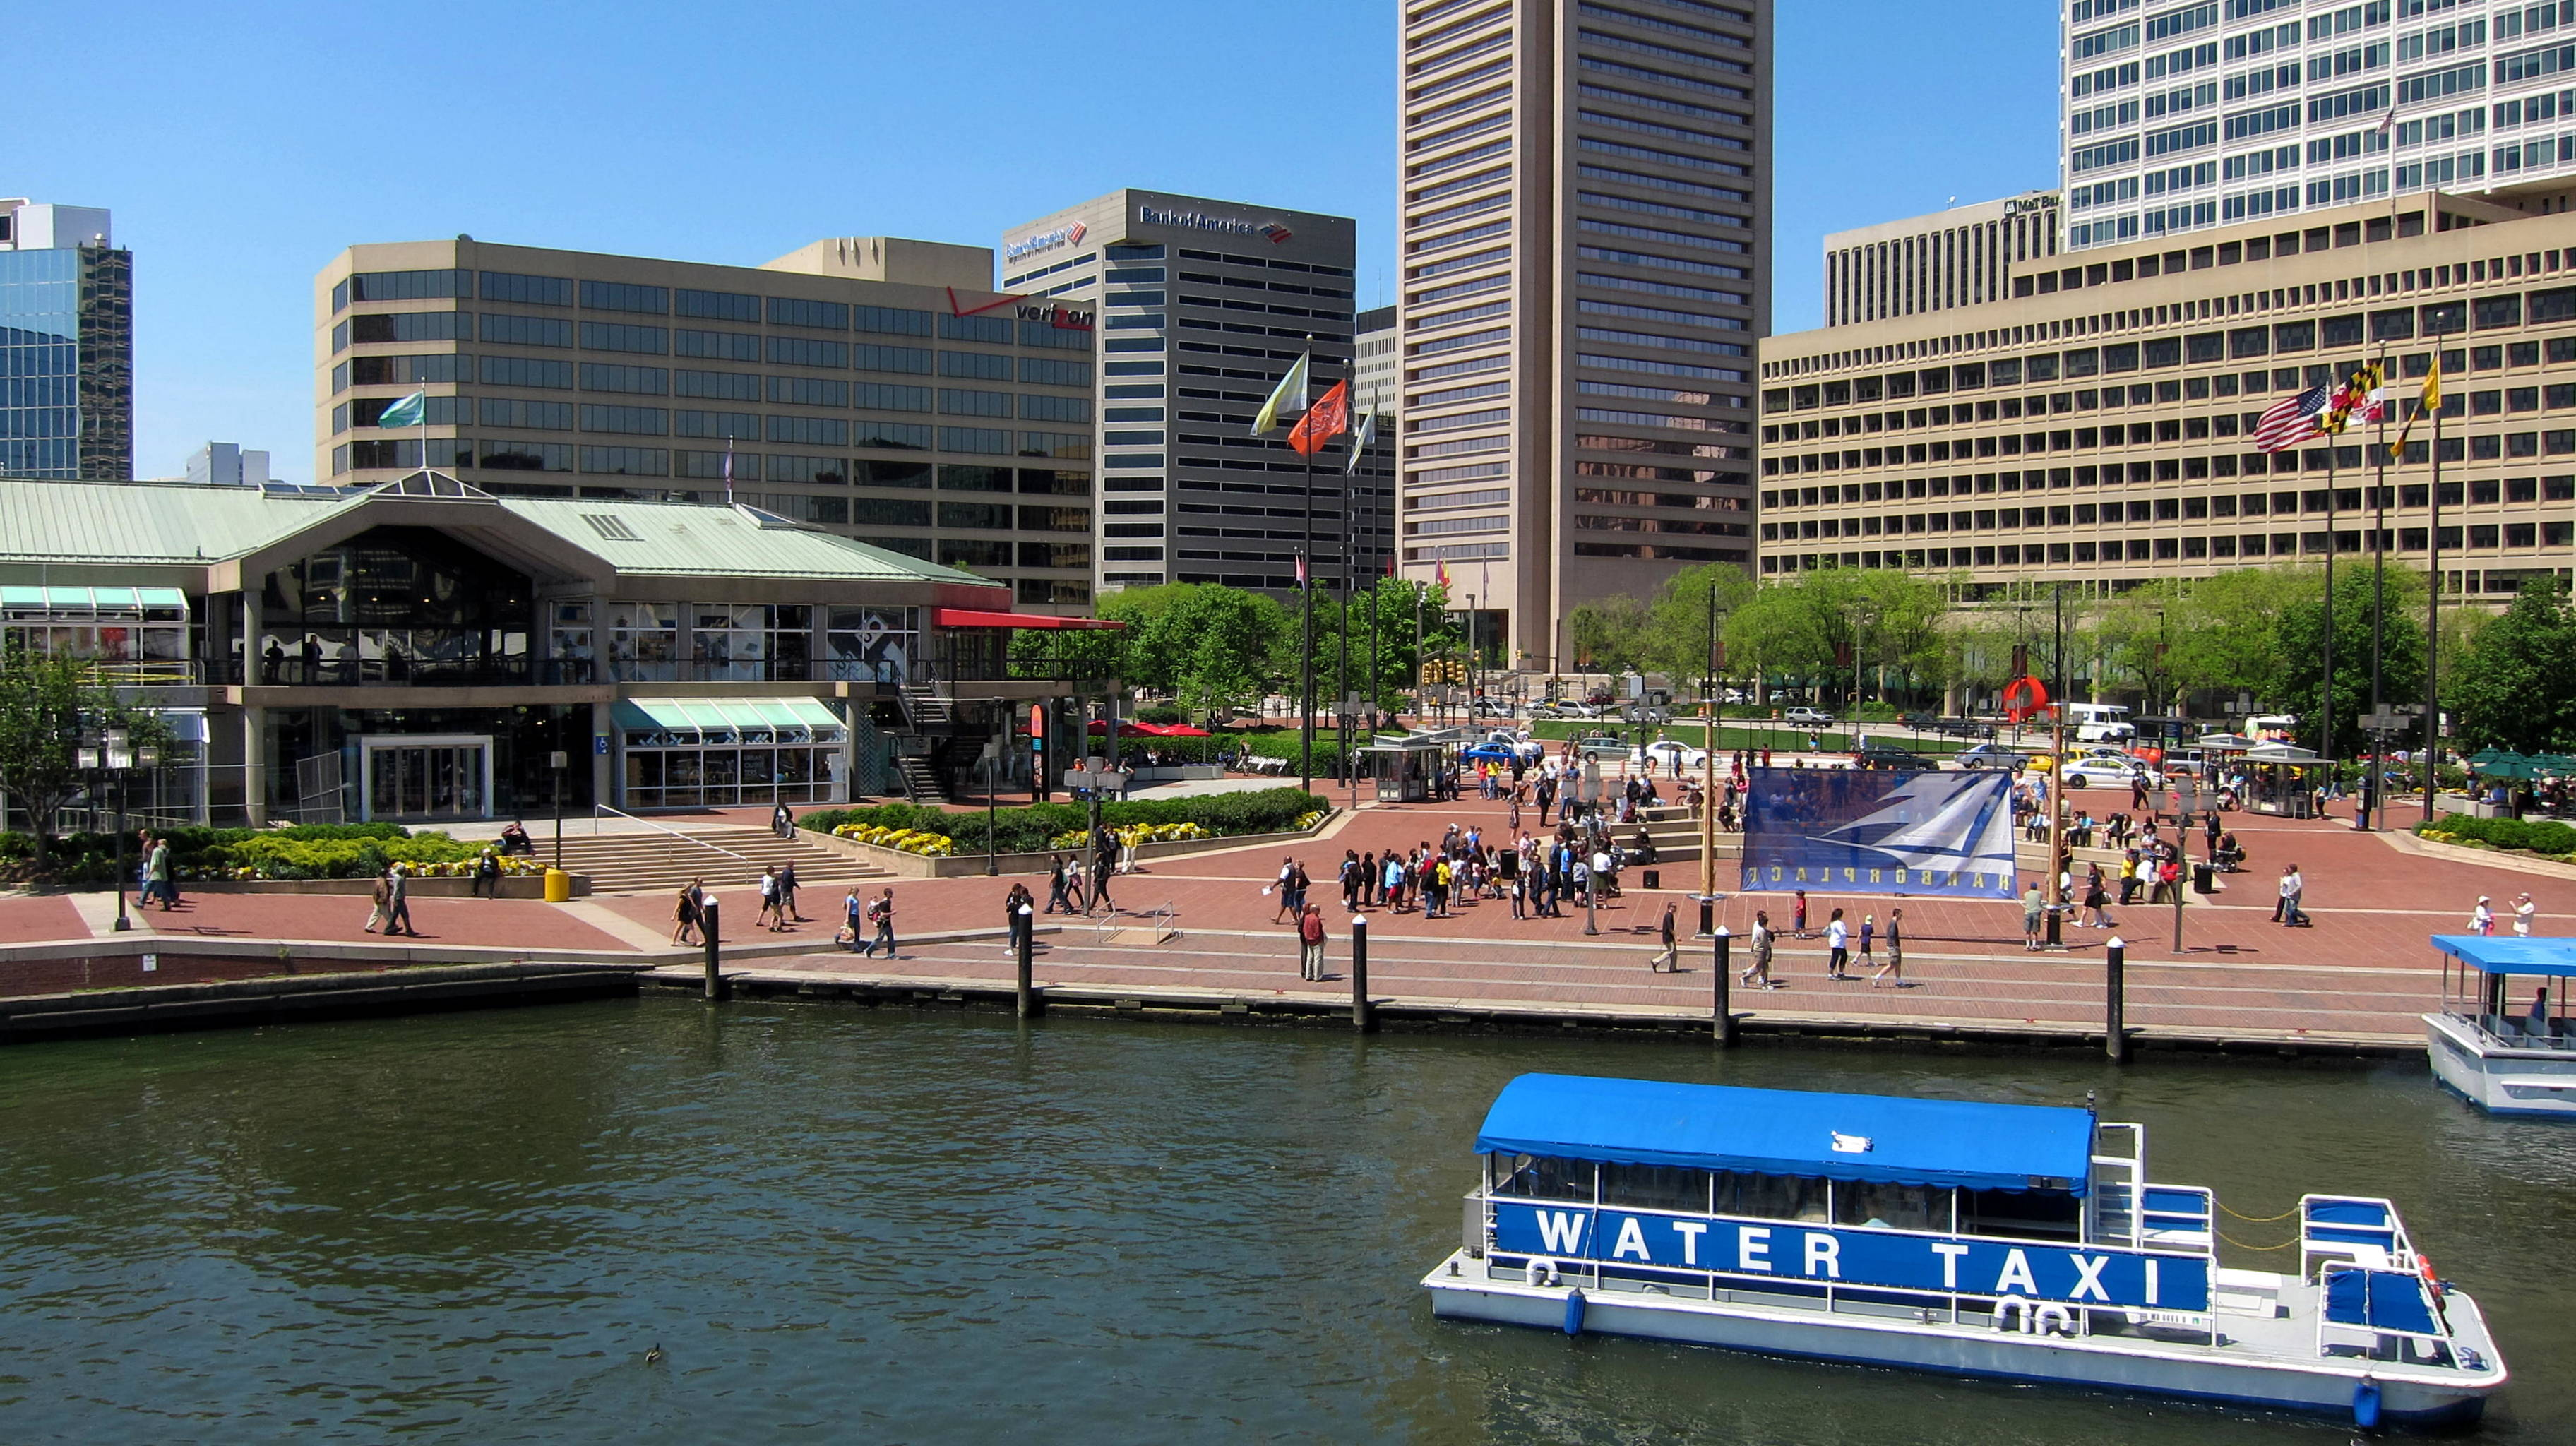 Aug 31, · During a recent visit to Baltimore for our organization's annual meeting, we visited Harbor Place for lunch and were accosted by 4 threatening individuals with aggressive racist rants against non-African Americans/5().